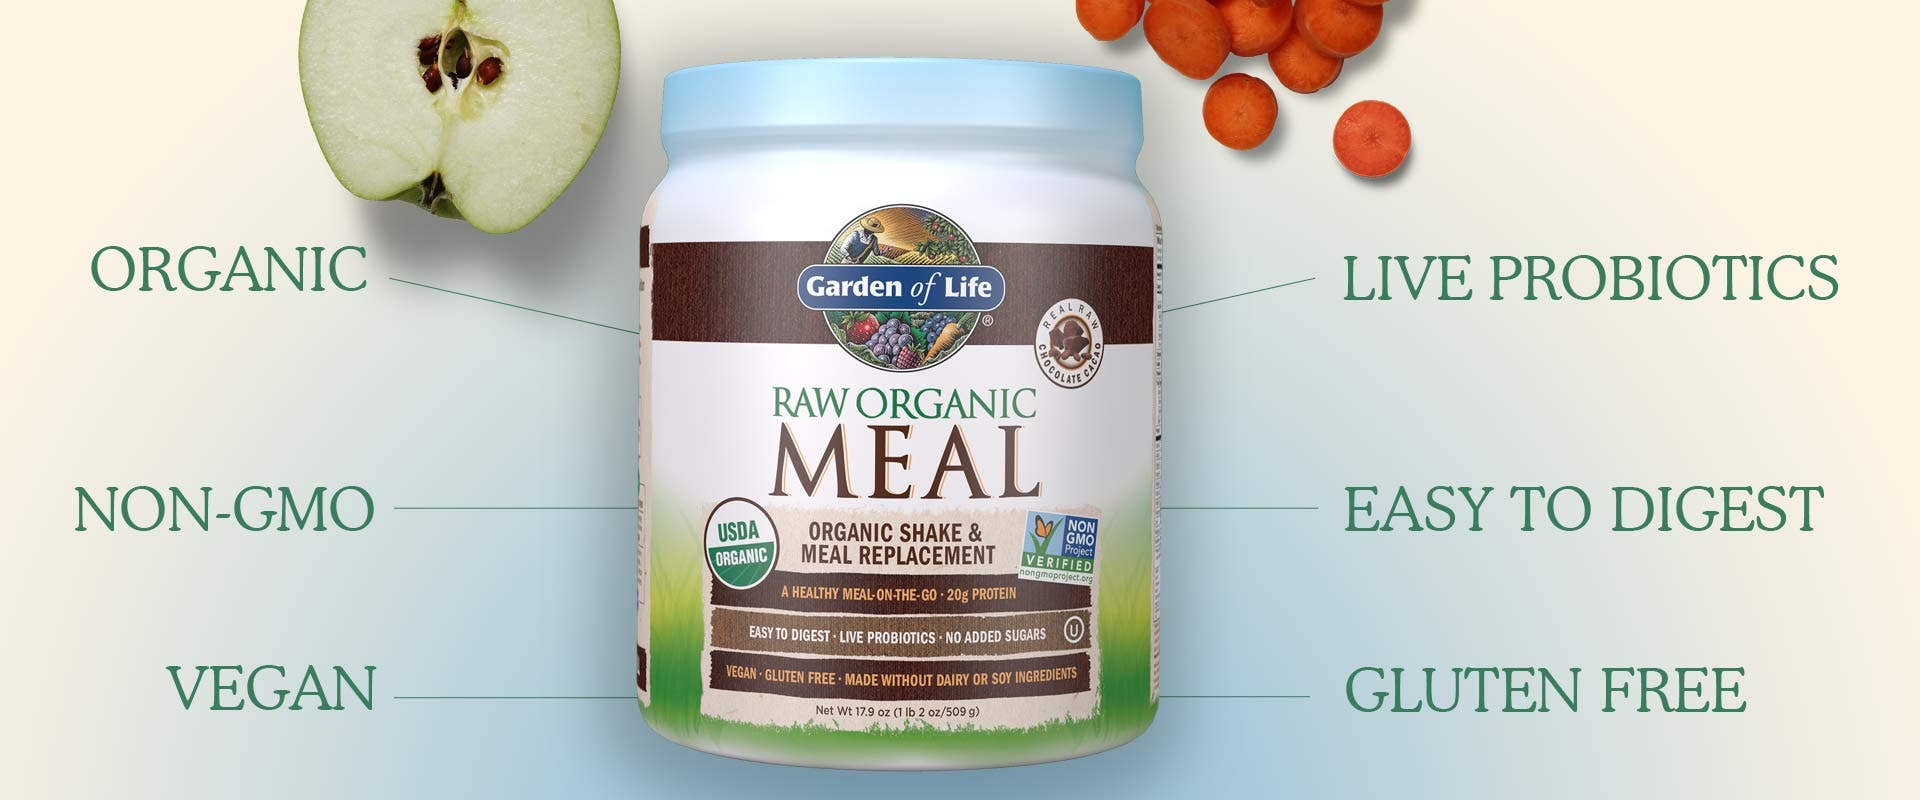 Raw Organic Meal Chocolate by Garden of Life